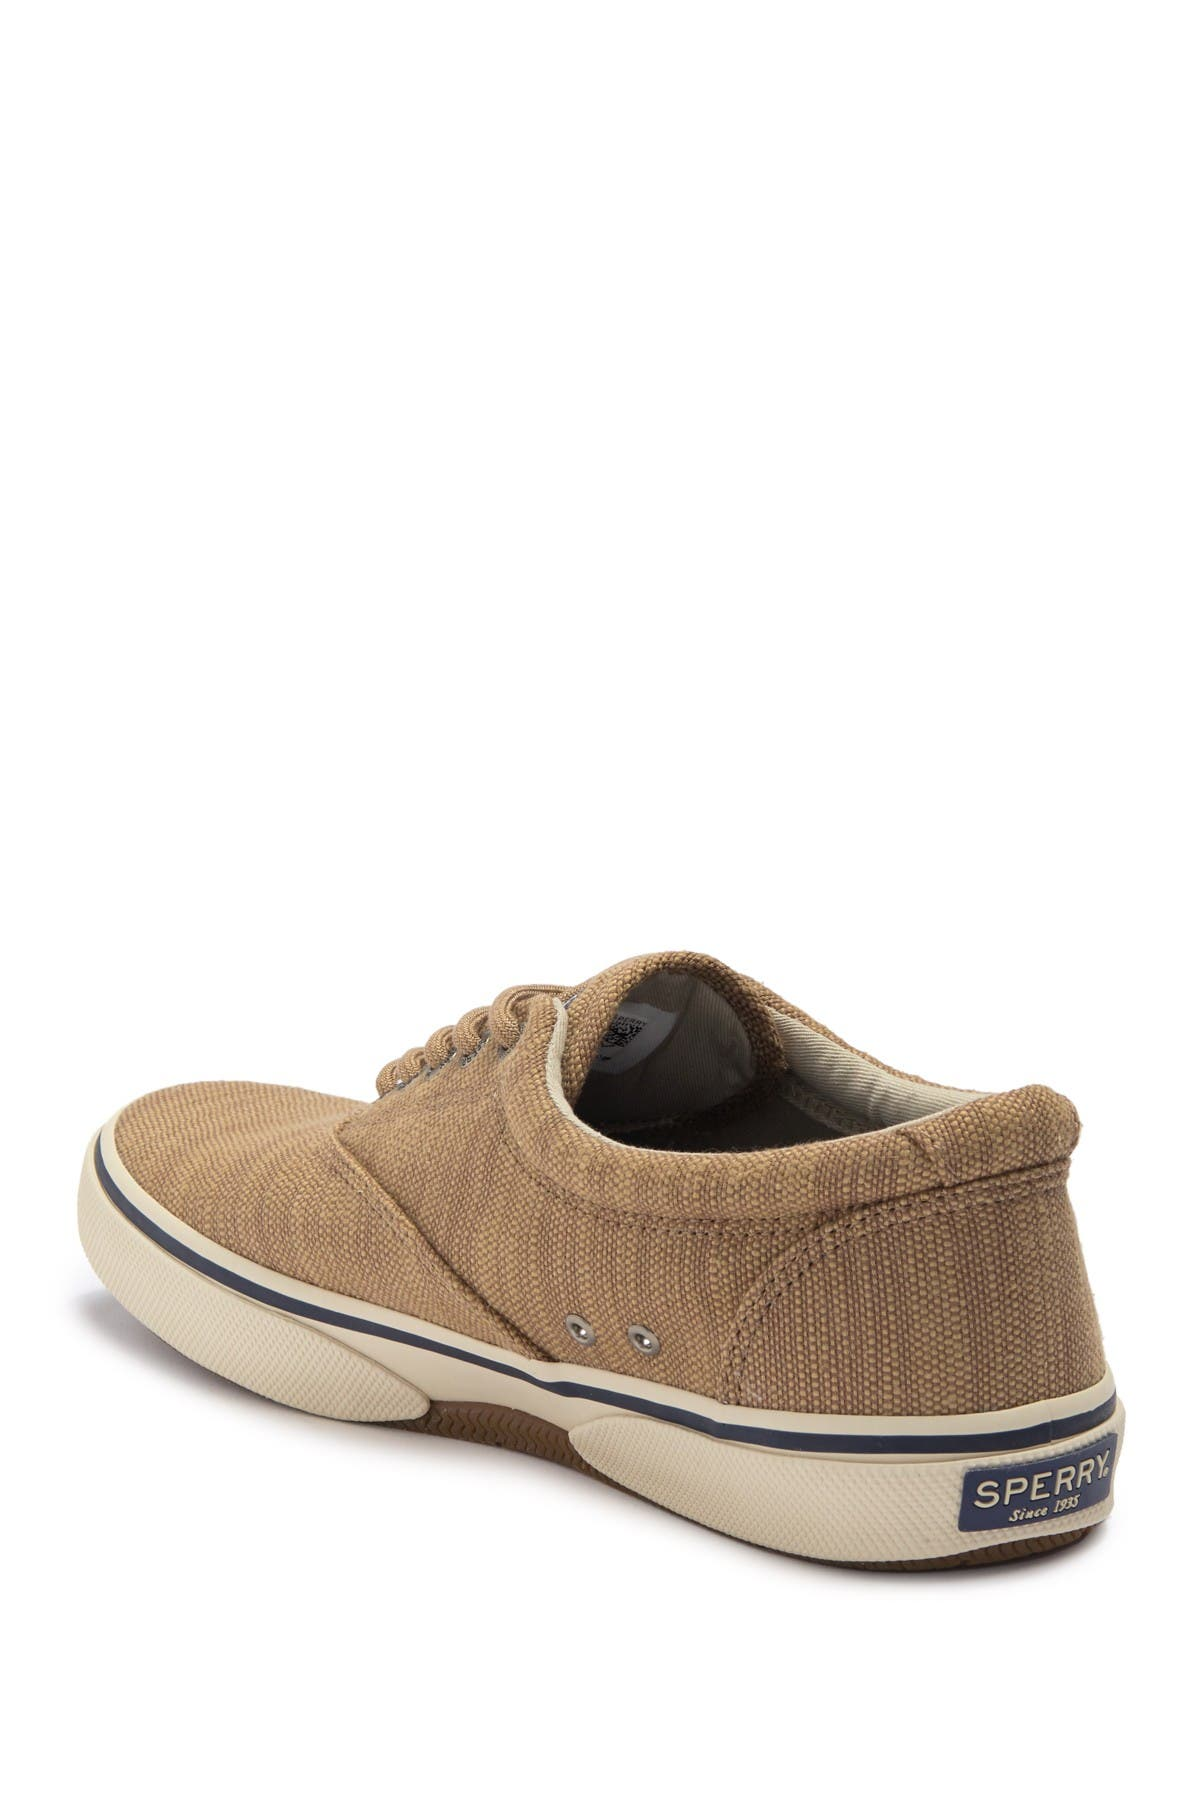 Image of Sperry Halyard CVO Lace-Up Sneaker